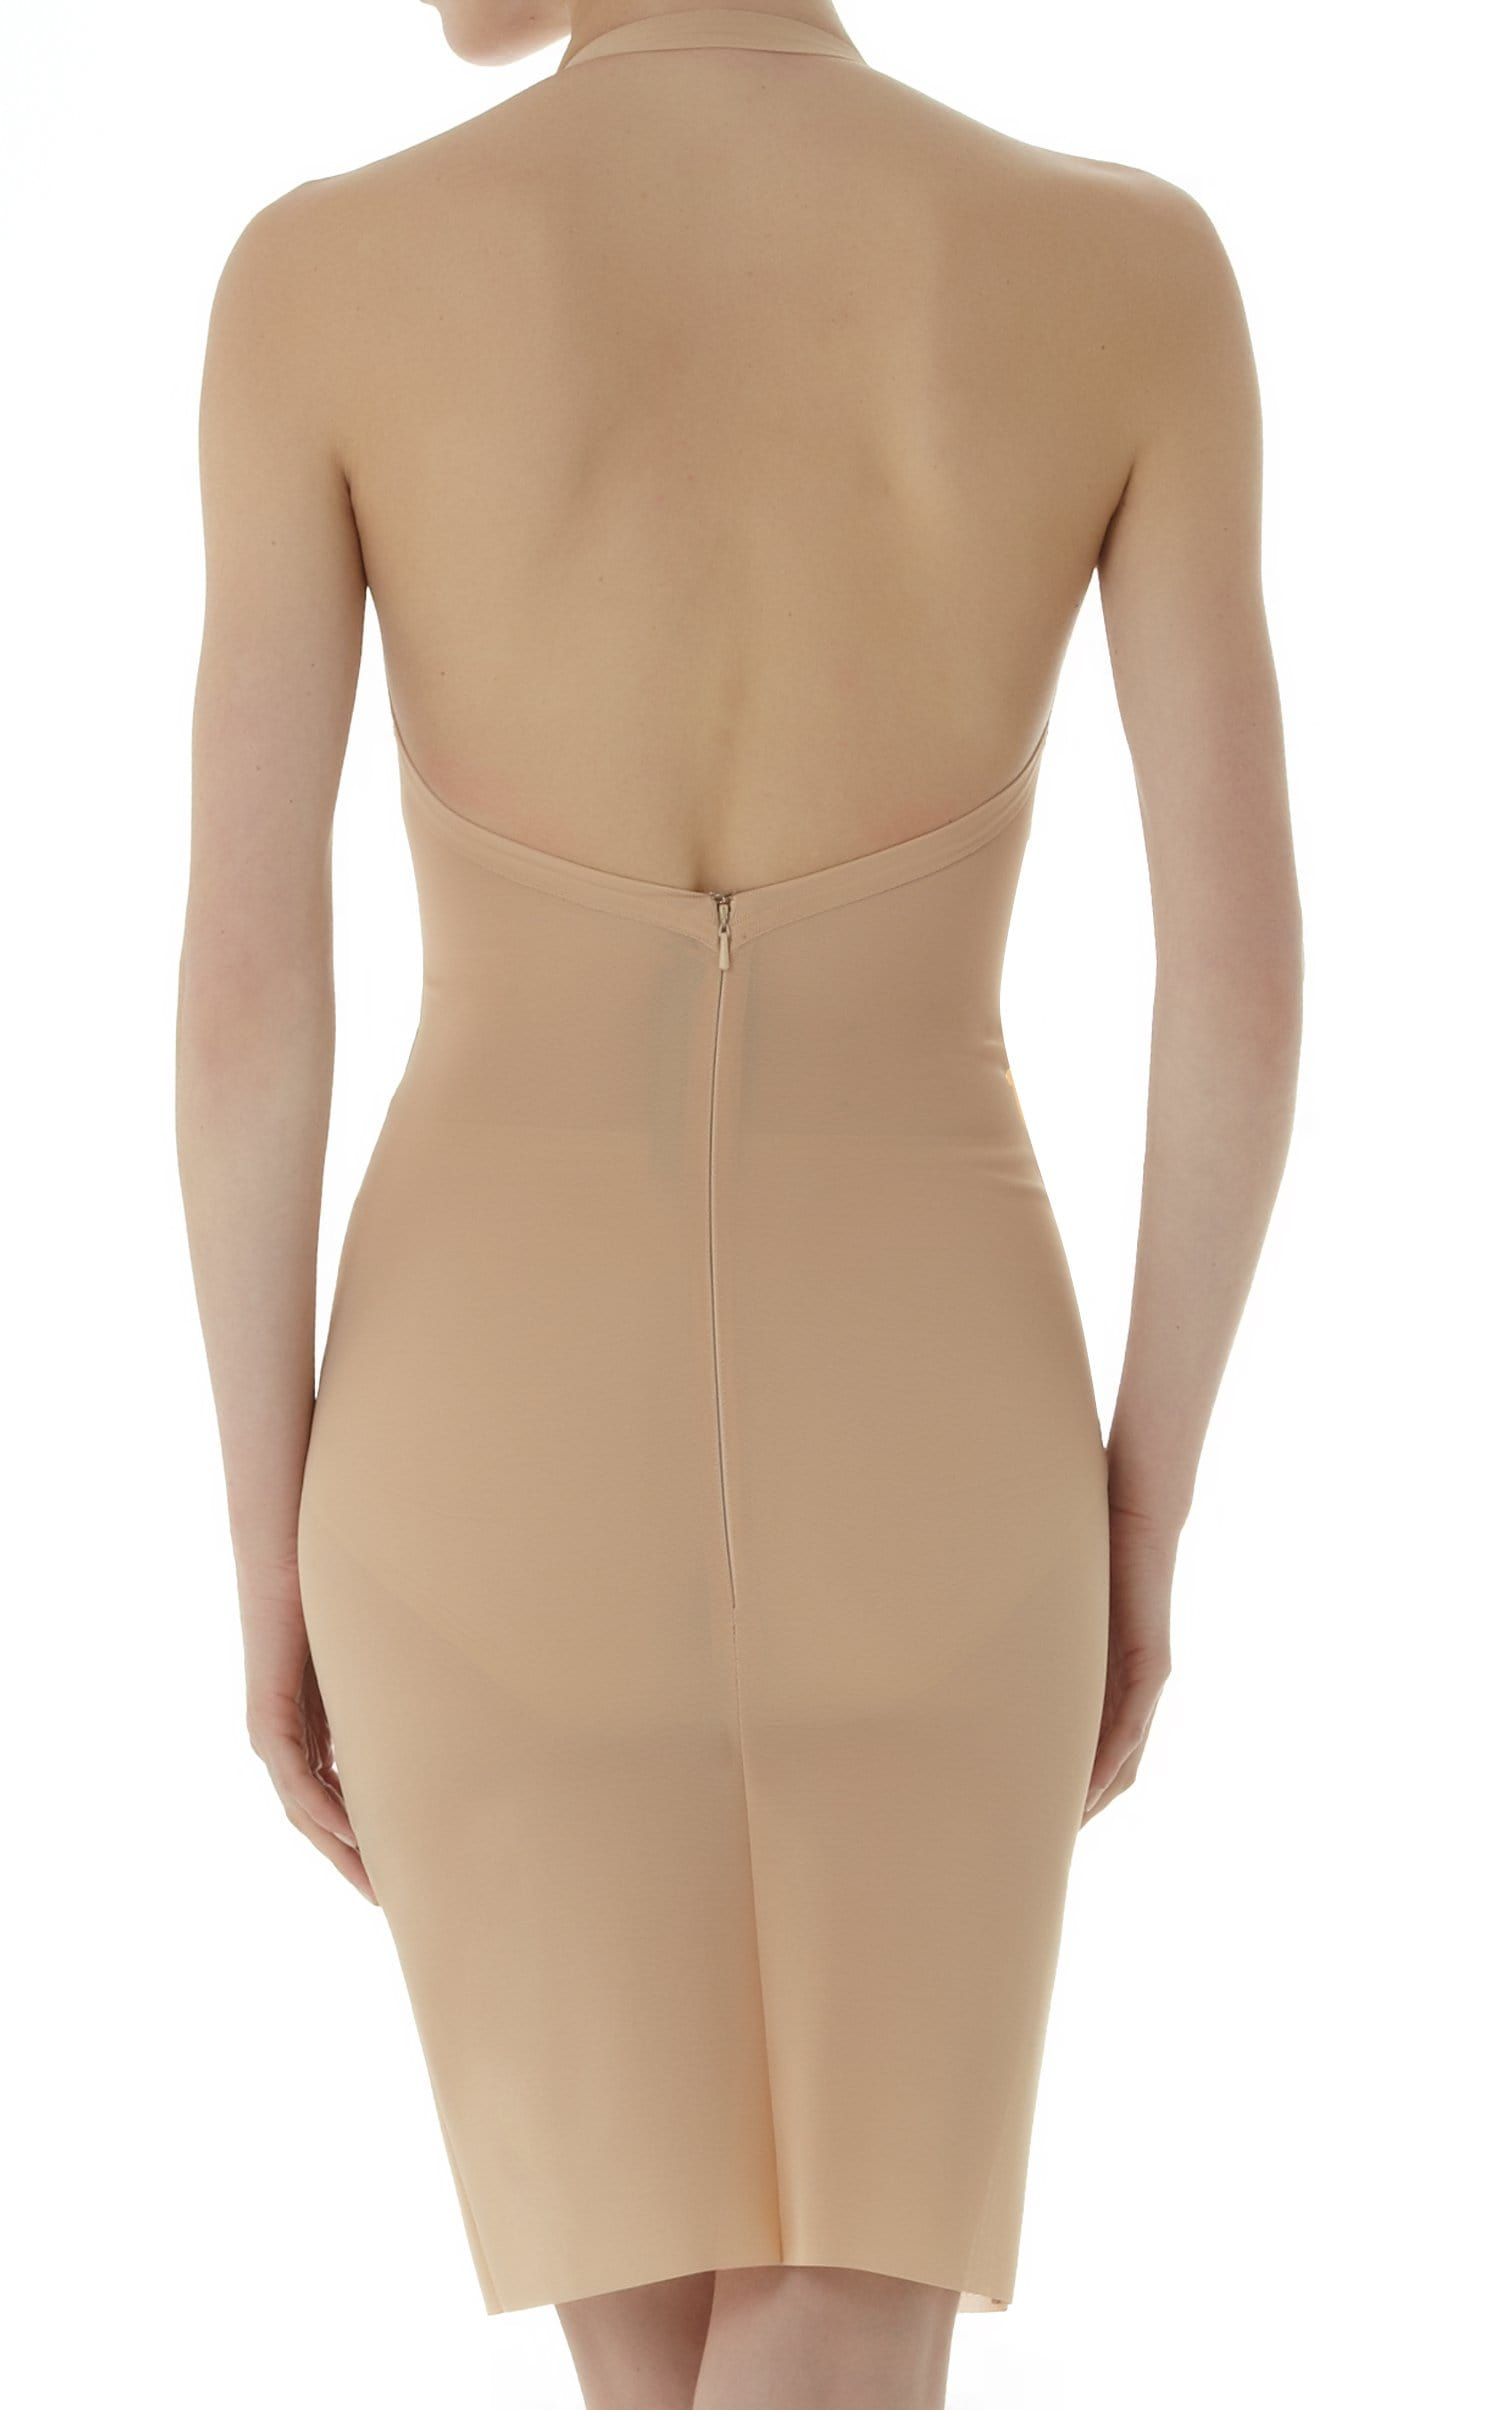 Powermesh Halter Dress In Flesh from Roland Mouret